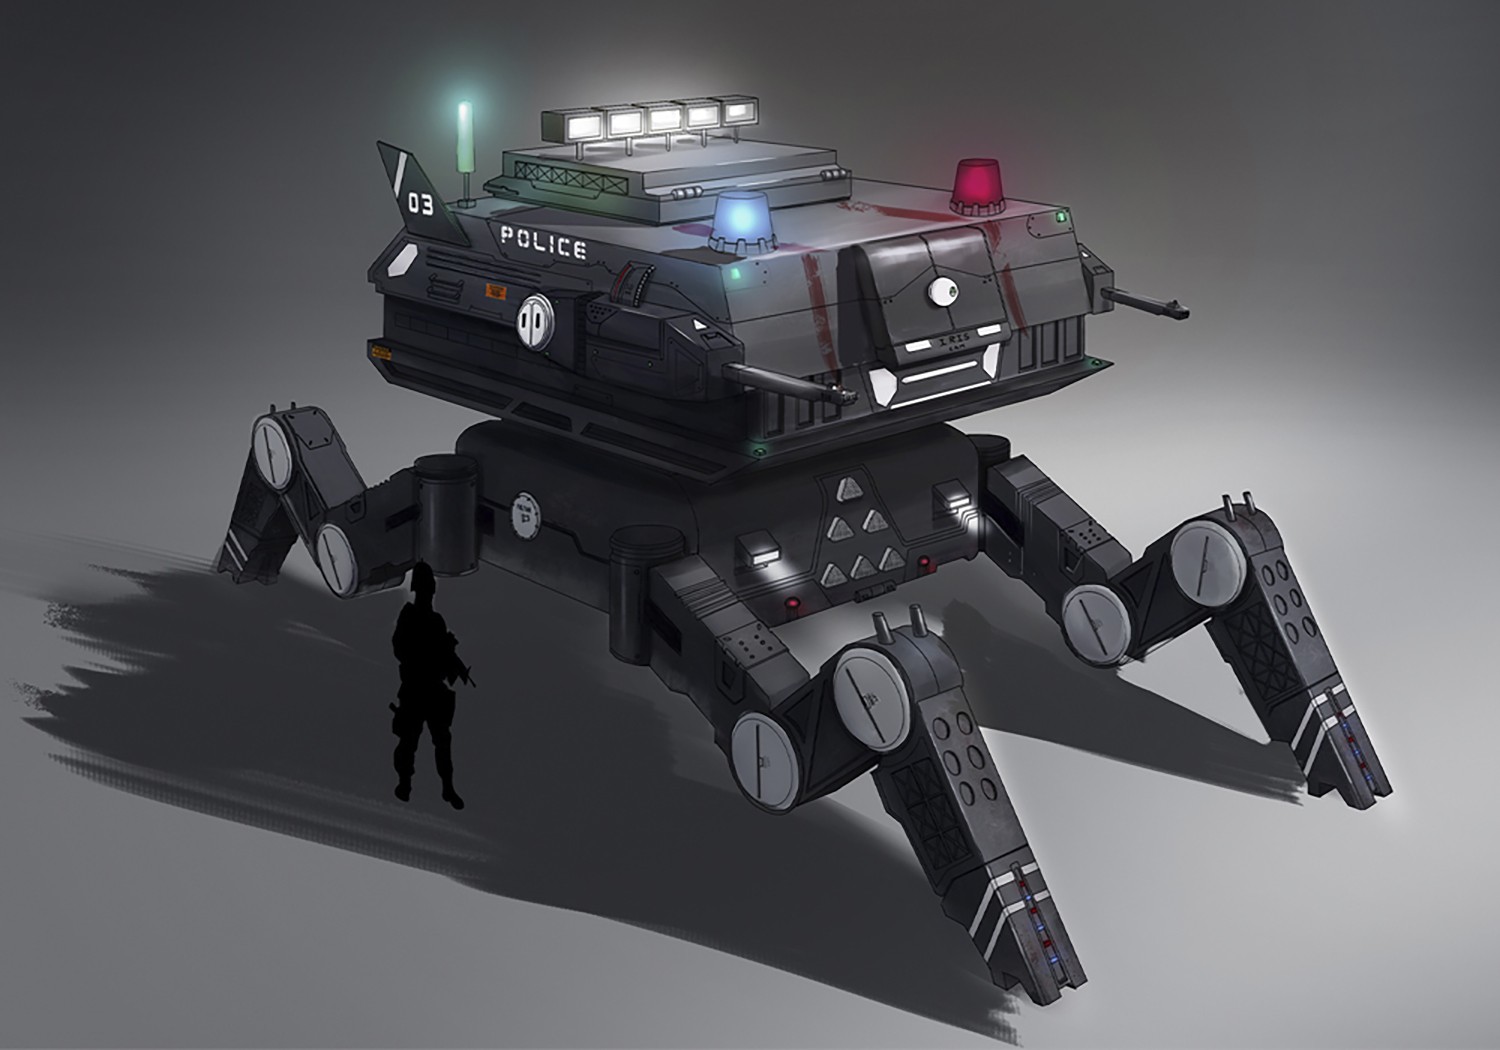 Police mech designed to control riots and mass surveillance.